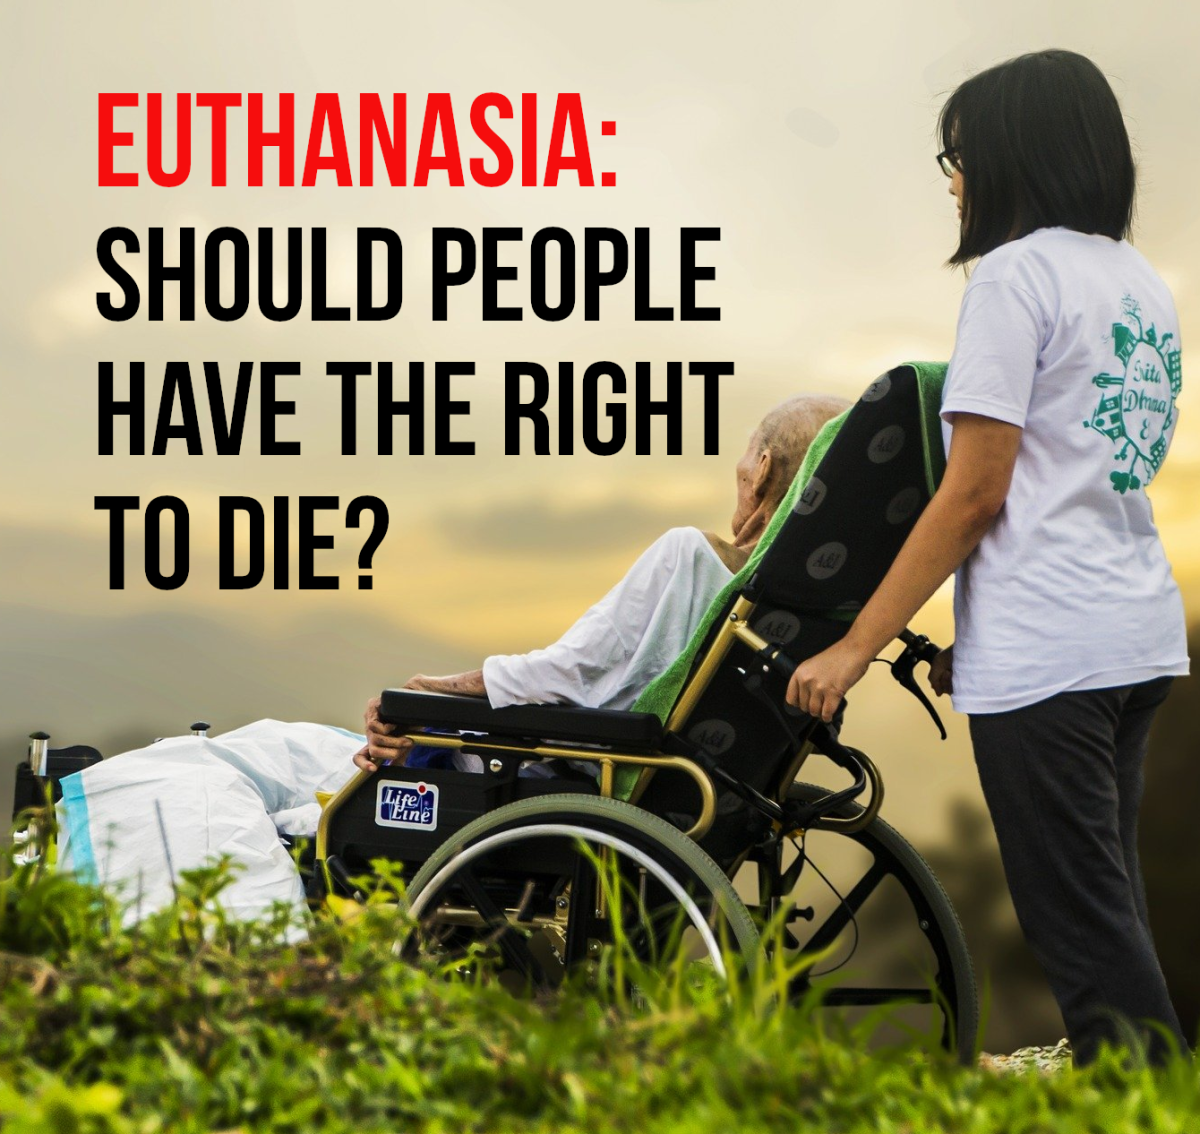 Euthanasia Pros and Cons: Should People Have the Right to Die?